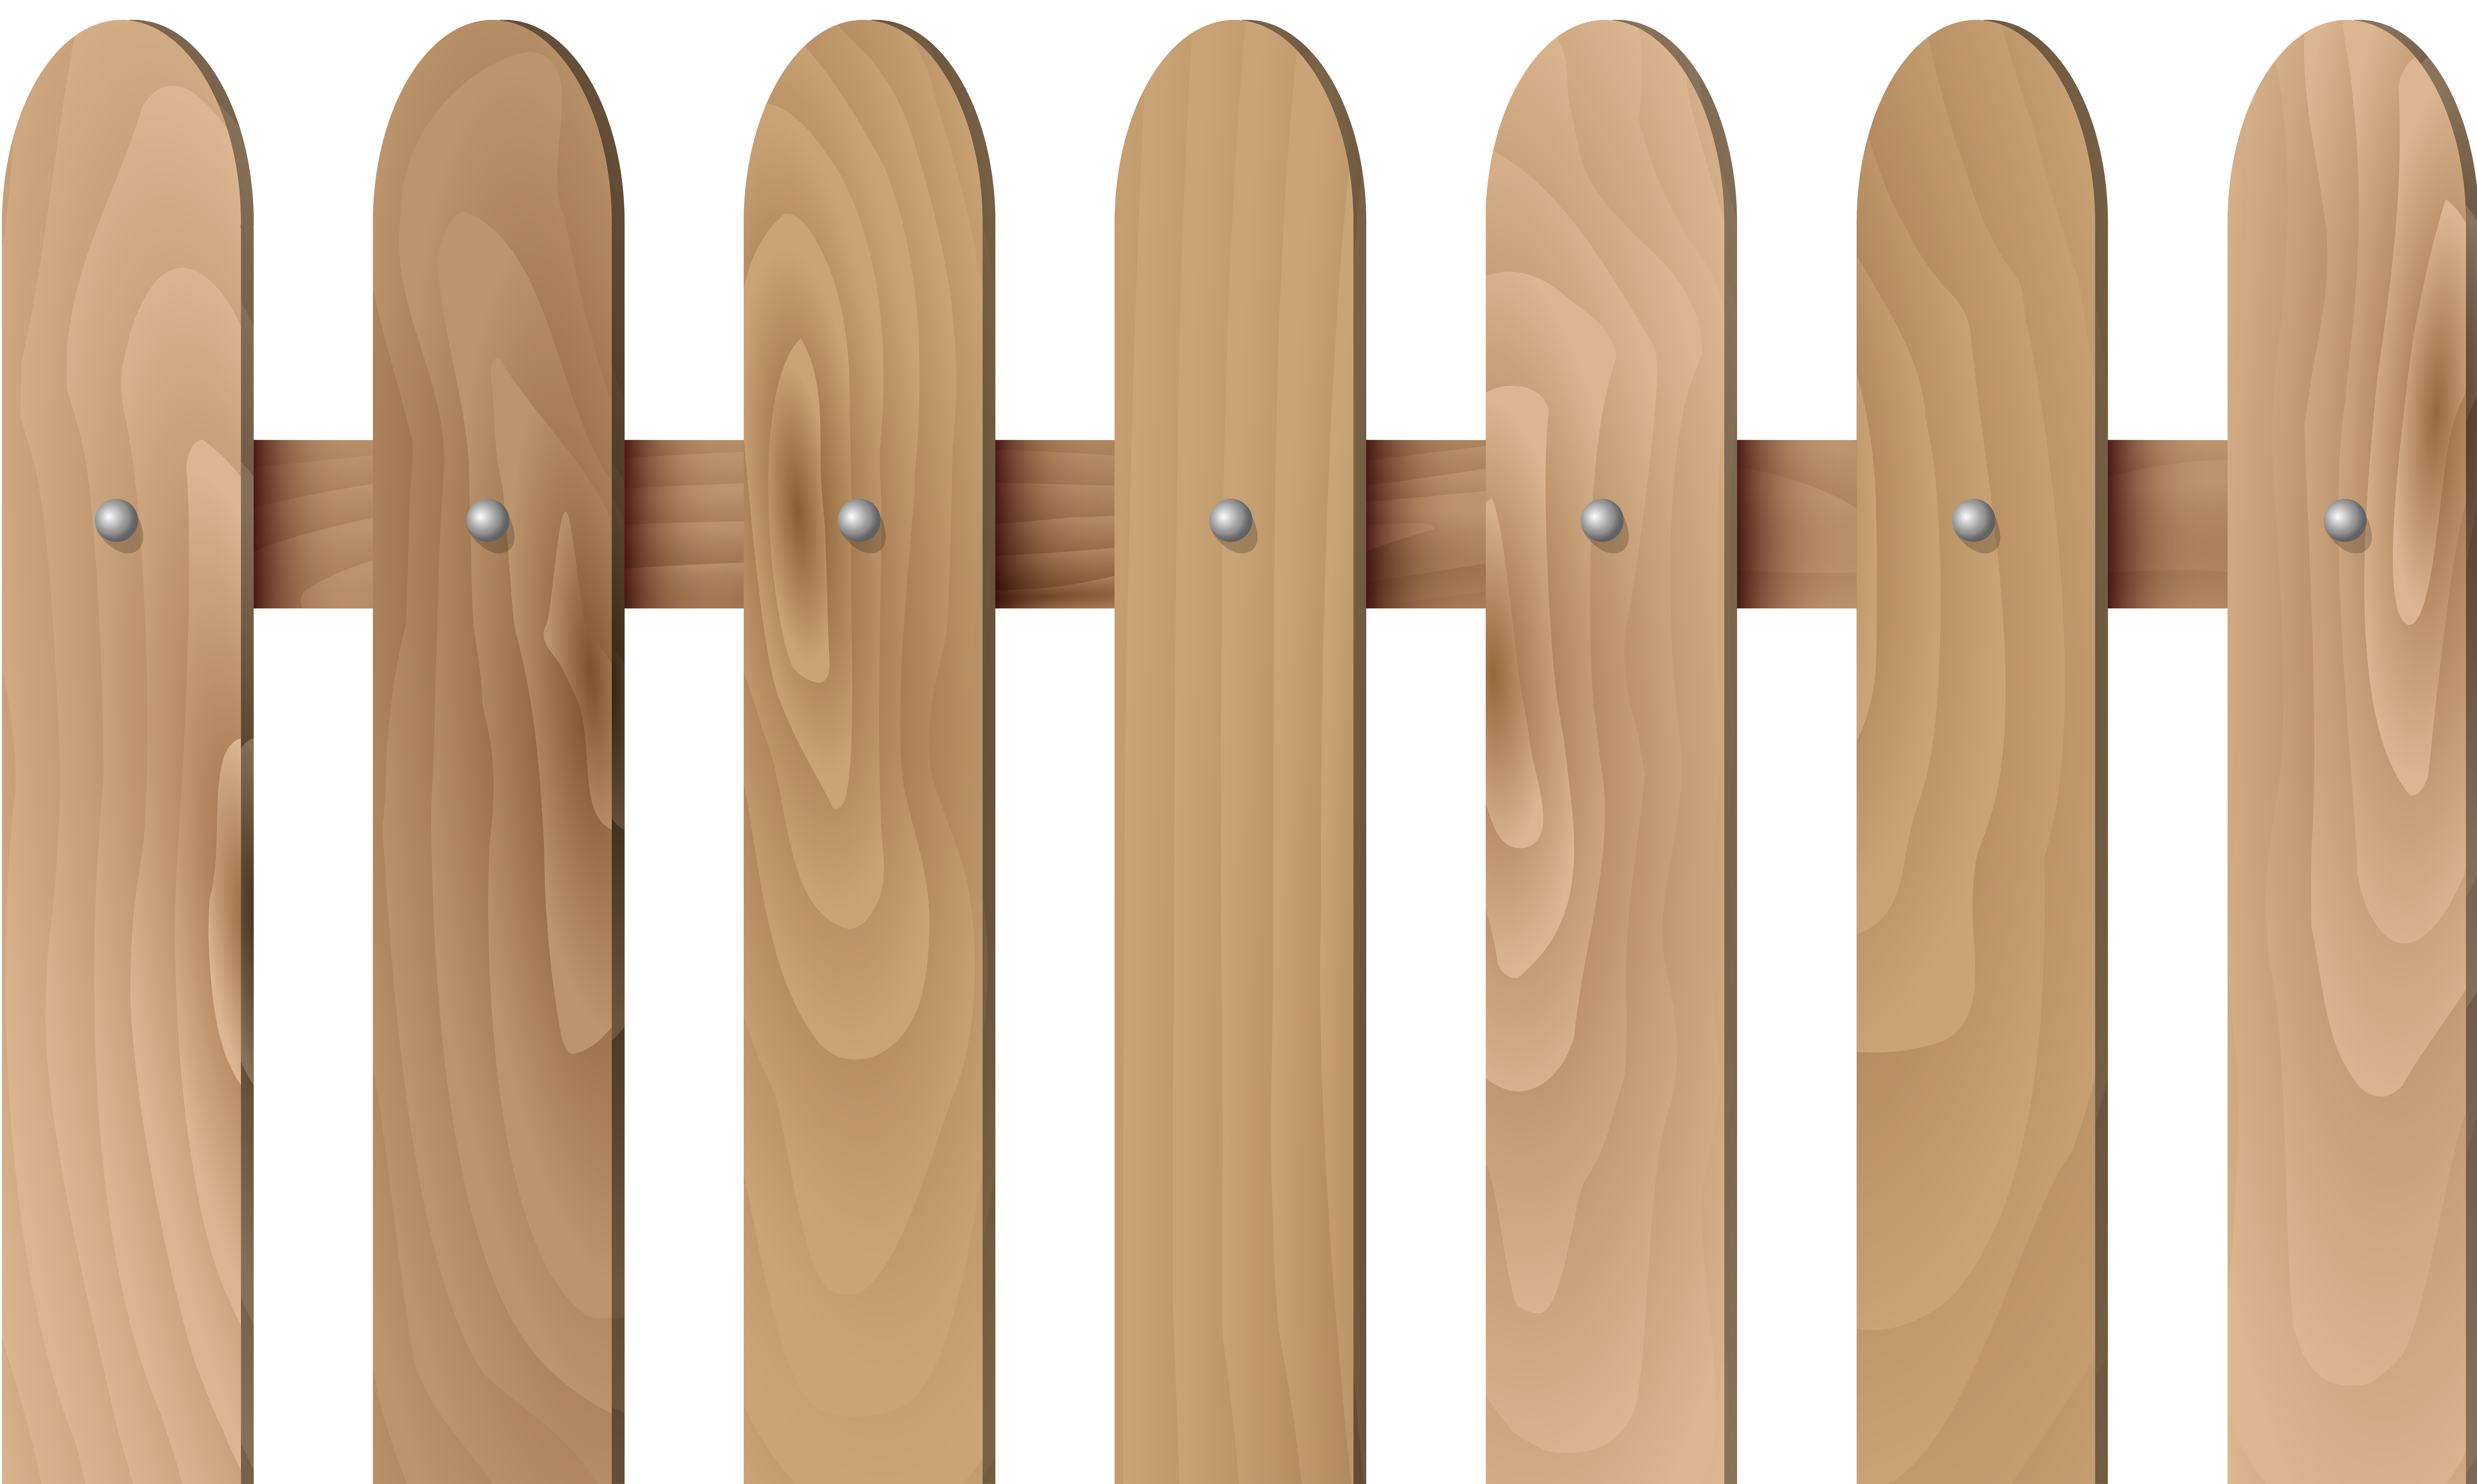 Picket fence Wood Clip art.